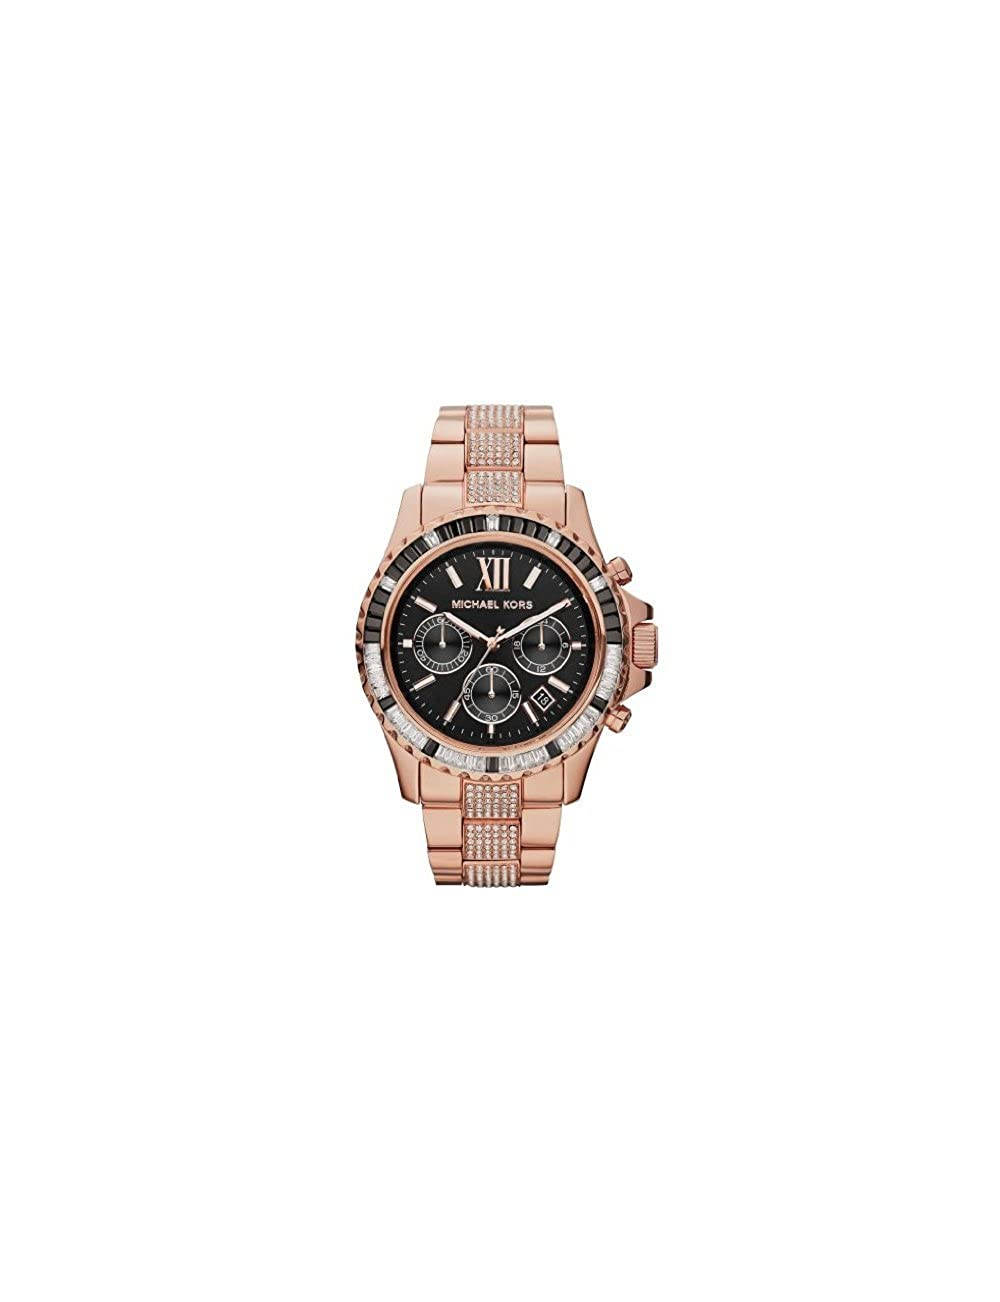 62c8c59896ba Amazon.com  Michael Kors Everest Chronograph Black Dial Rose Gold-tone  Ladies Watch MK5875  Michael Kors  Watches